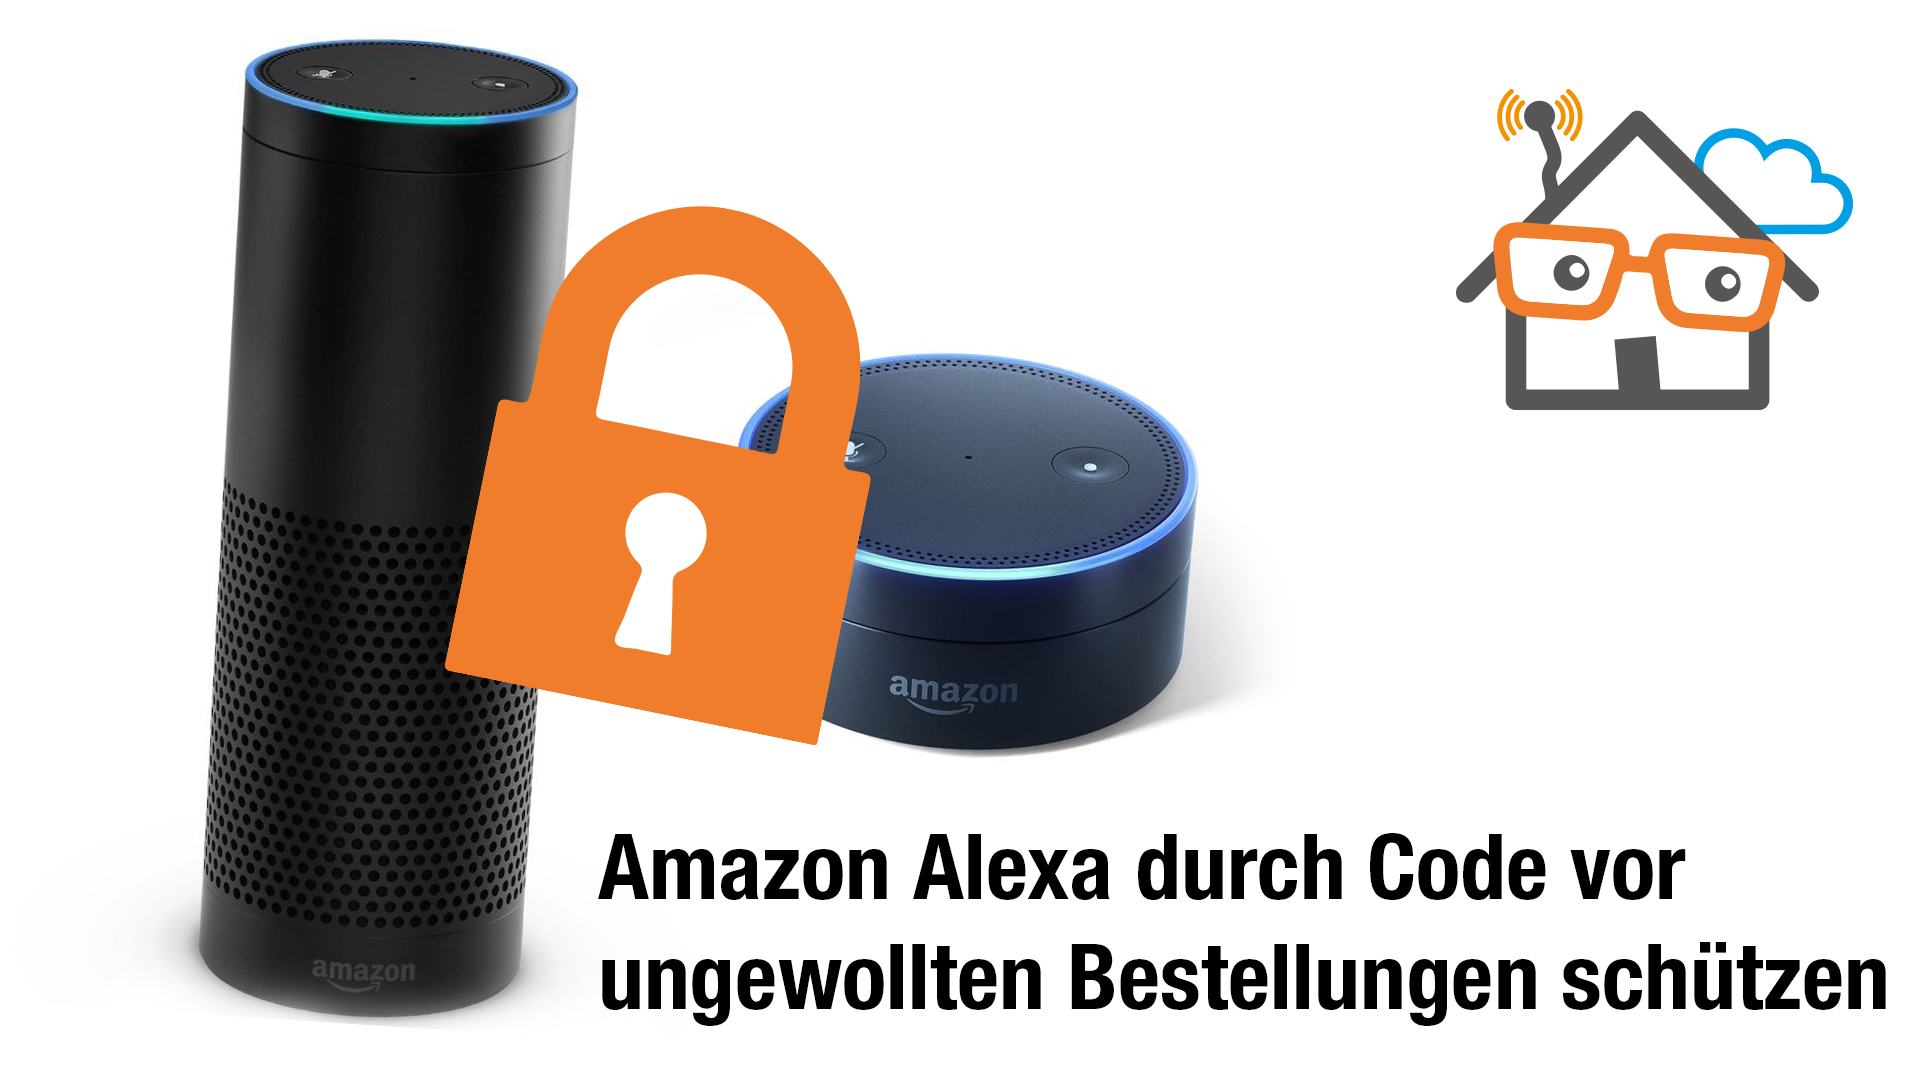 amazon alexa kindersicherung sch tzt vor ungewollten. Black Bedroom Furniture Sets. Home Design Ideas